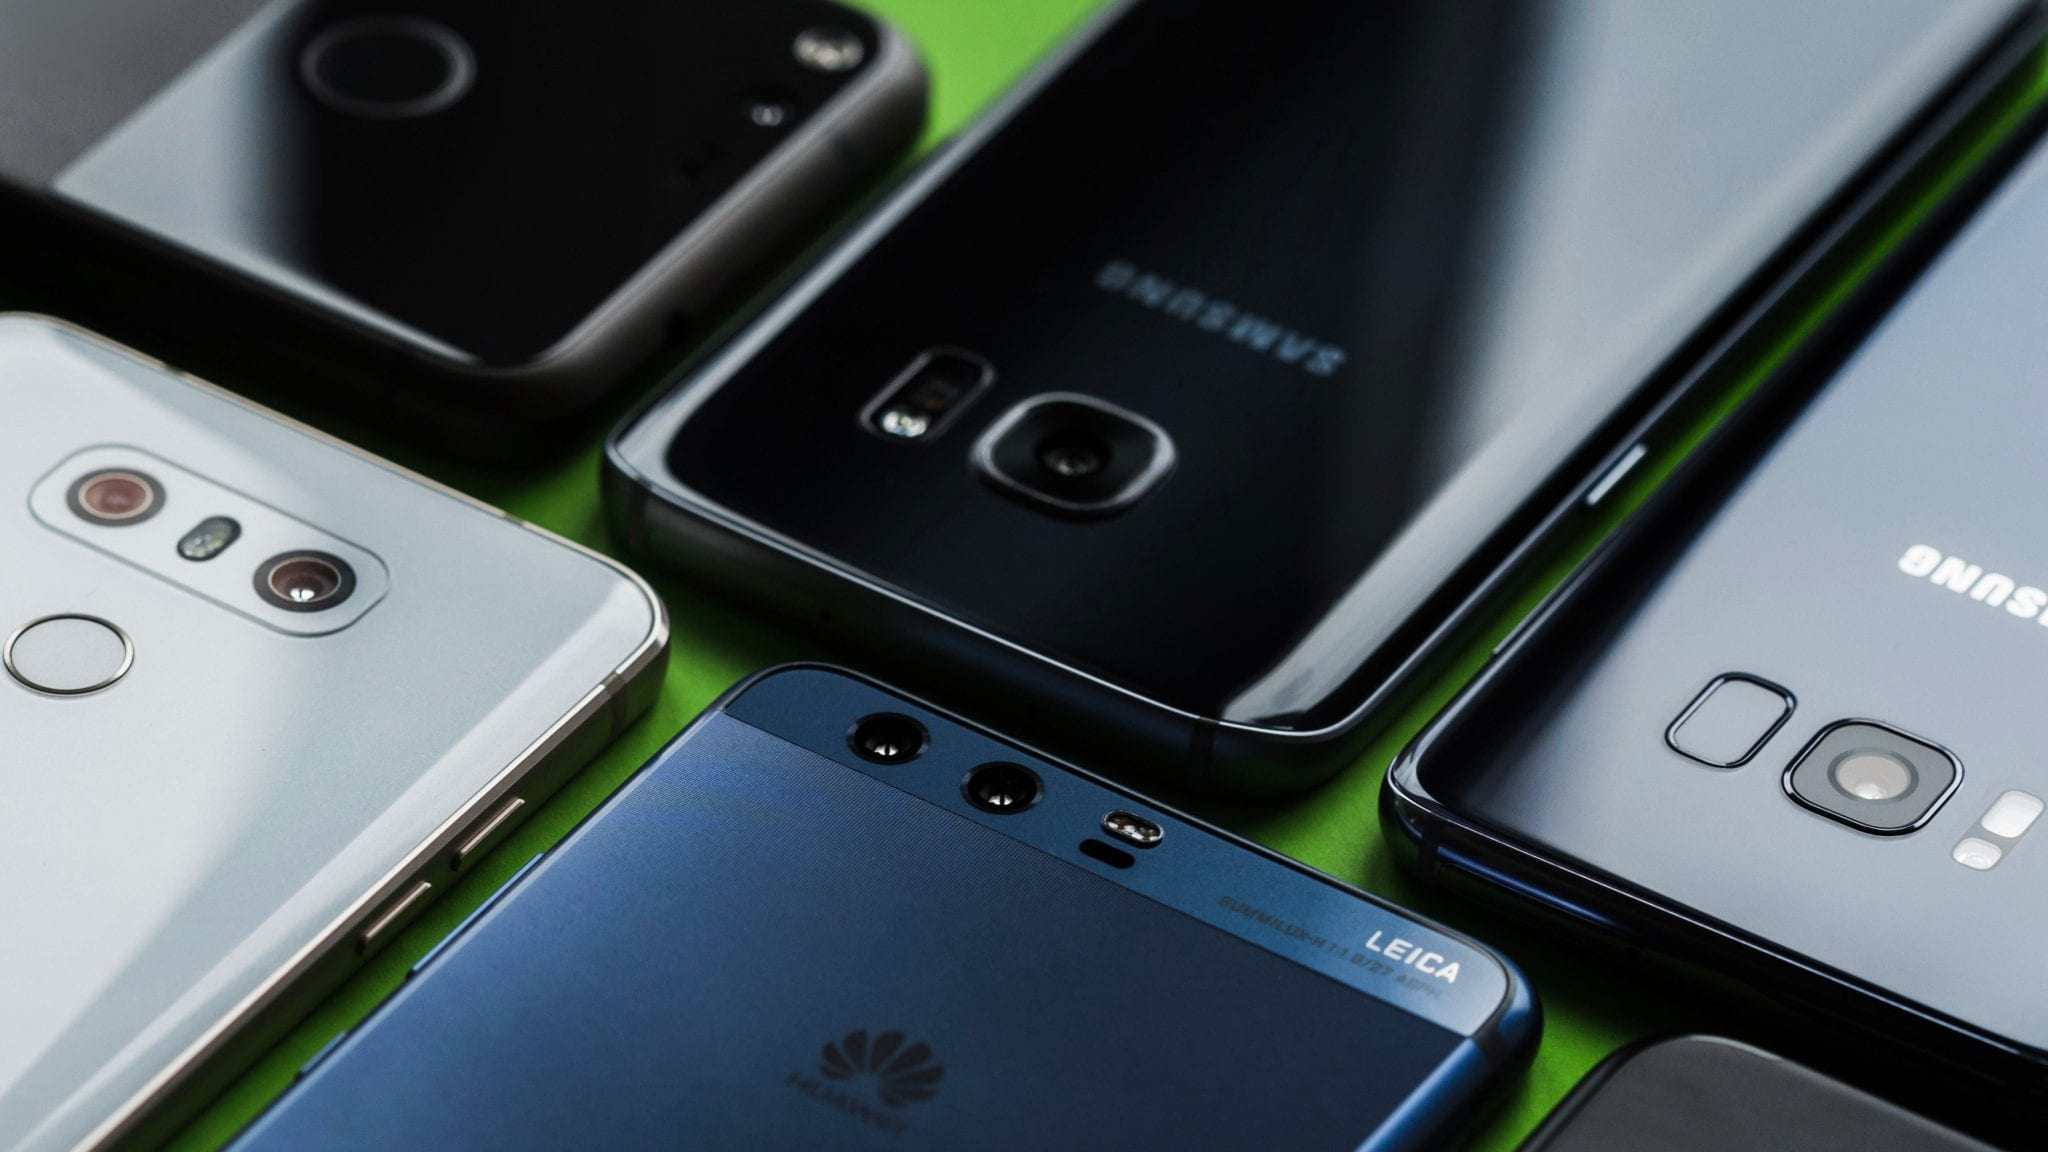 Smartphone sales decline for first time as Huawei gains on Apple